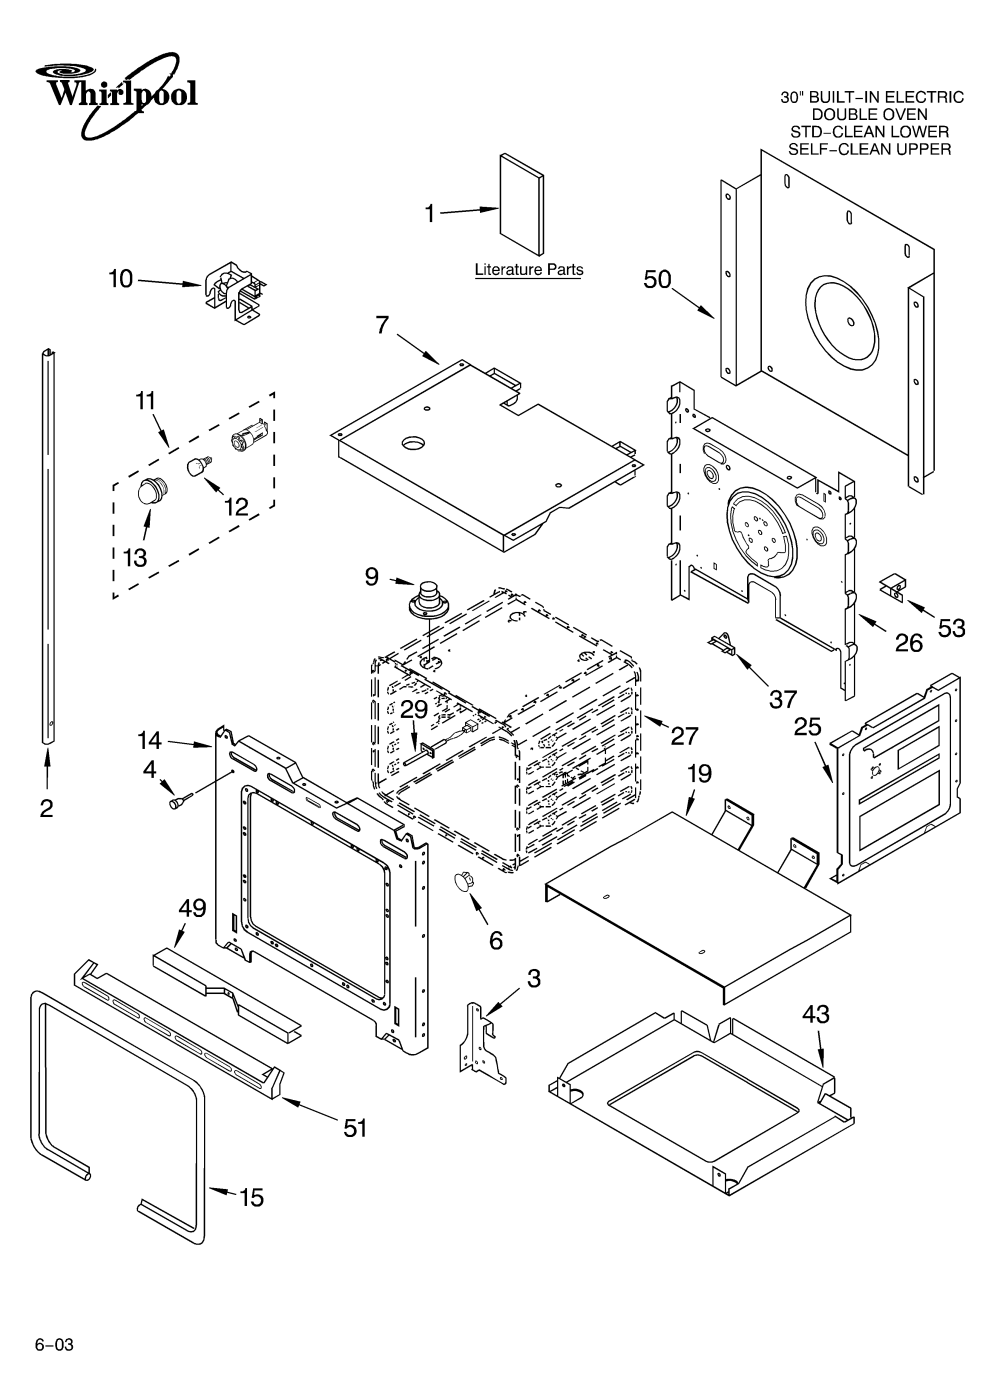 medium resolution of whirlpool rbd305pdq14 lower oven parts diagram